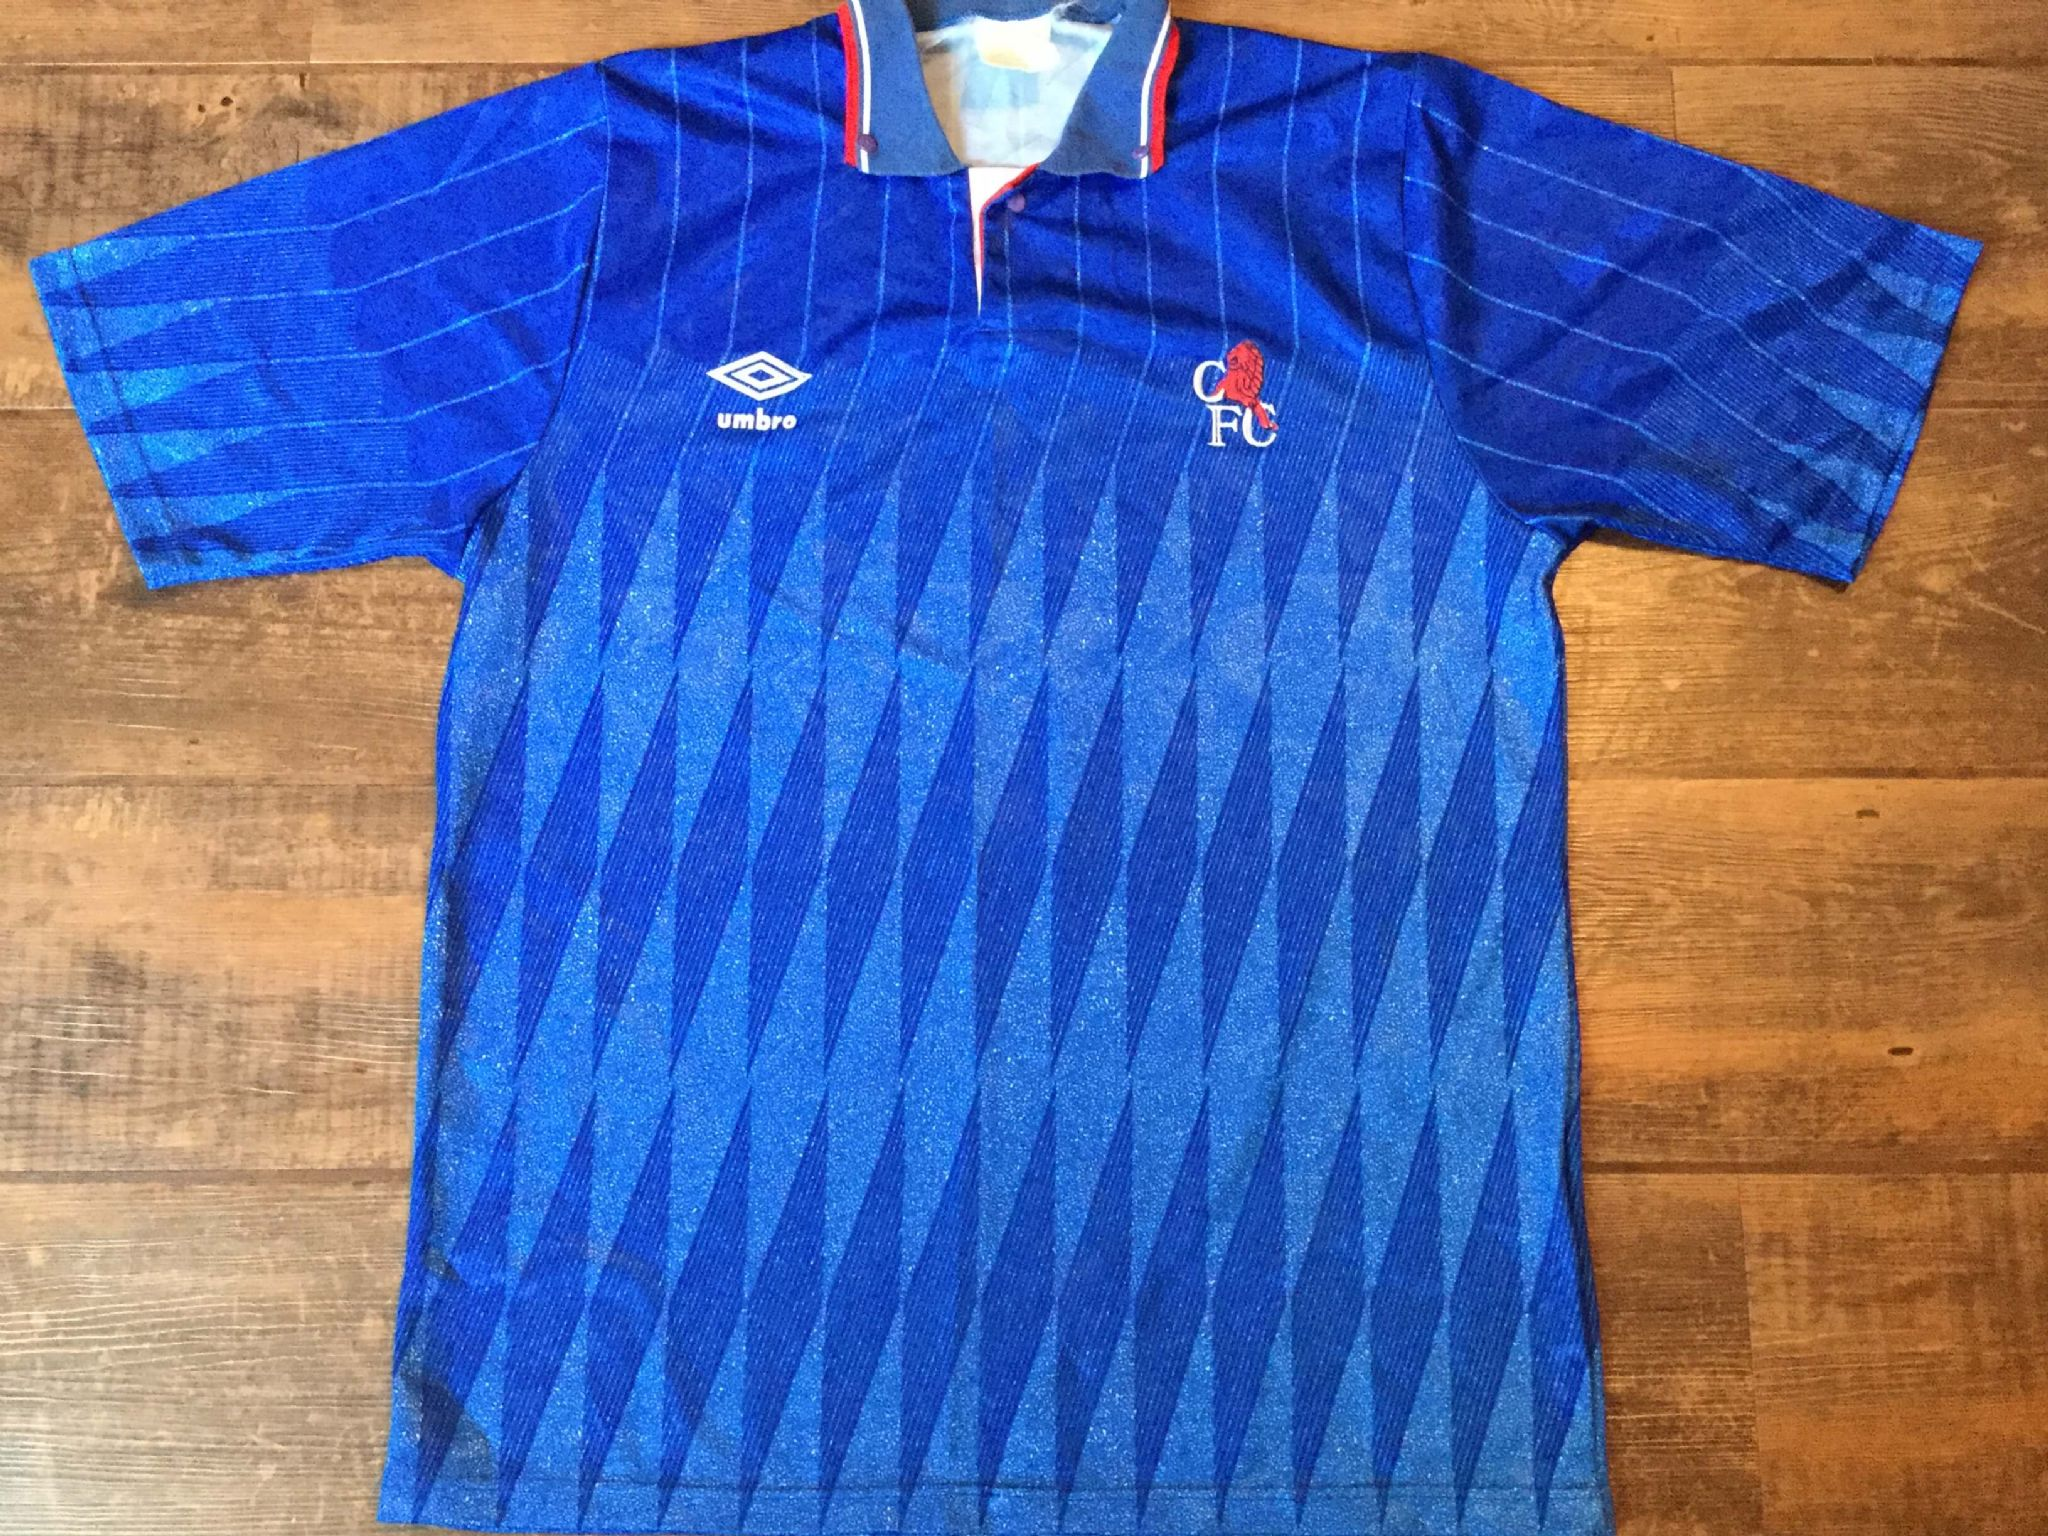 online store dbde7 8f3e7 Global Classic Football Shirts | 1989 Chelsea Vintage Old ...